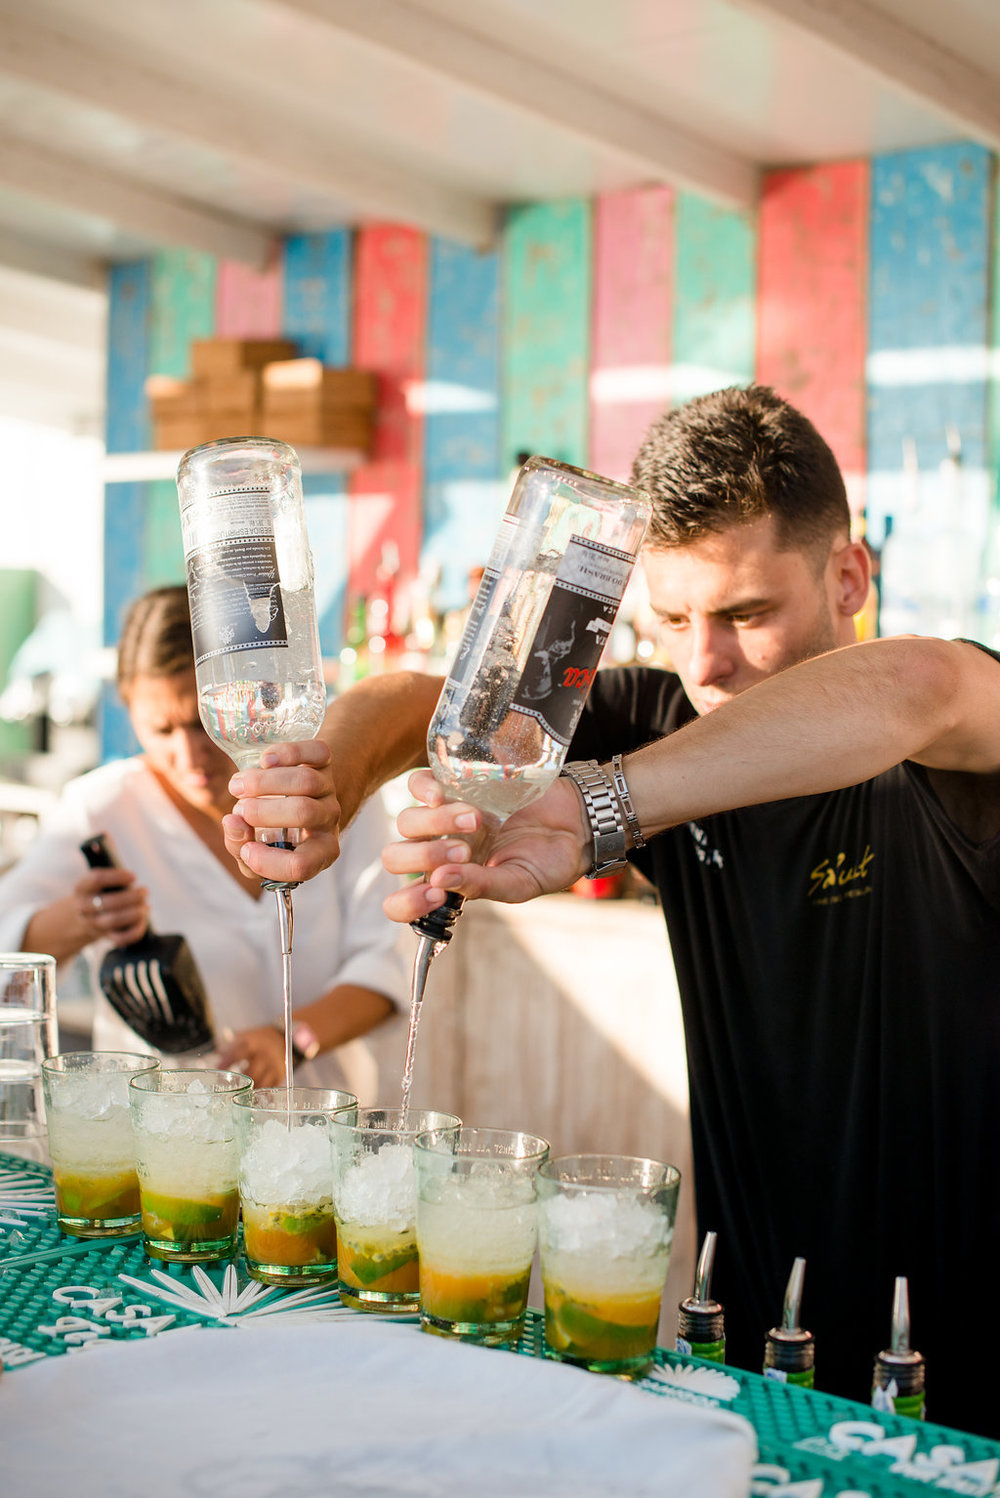 ibiza flair, cocktails, events, obi and the island